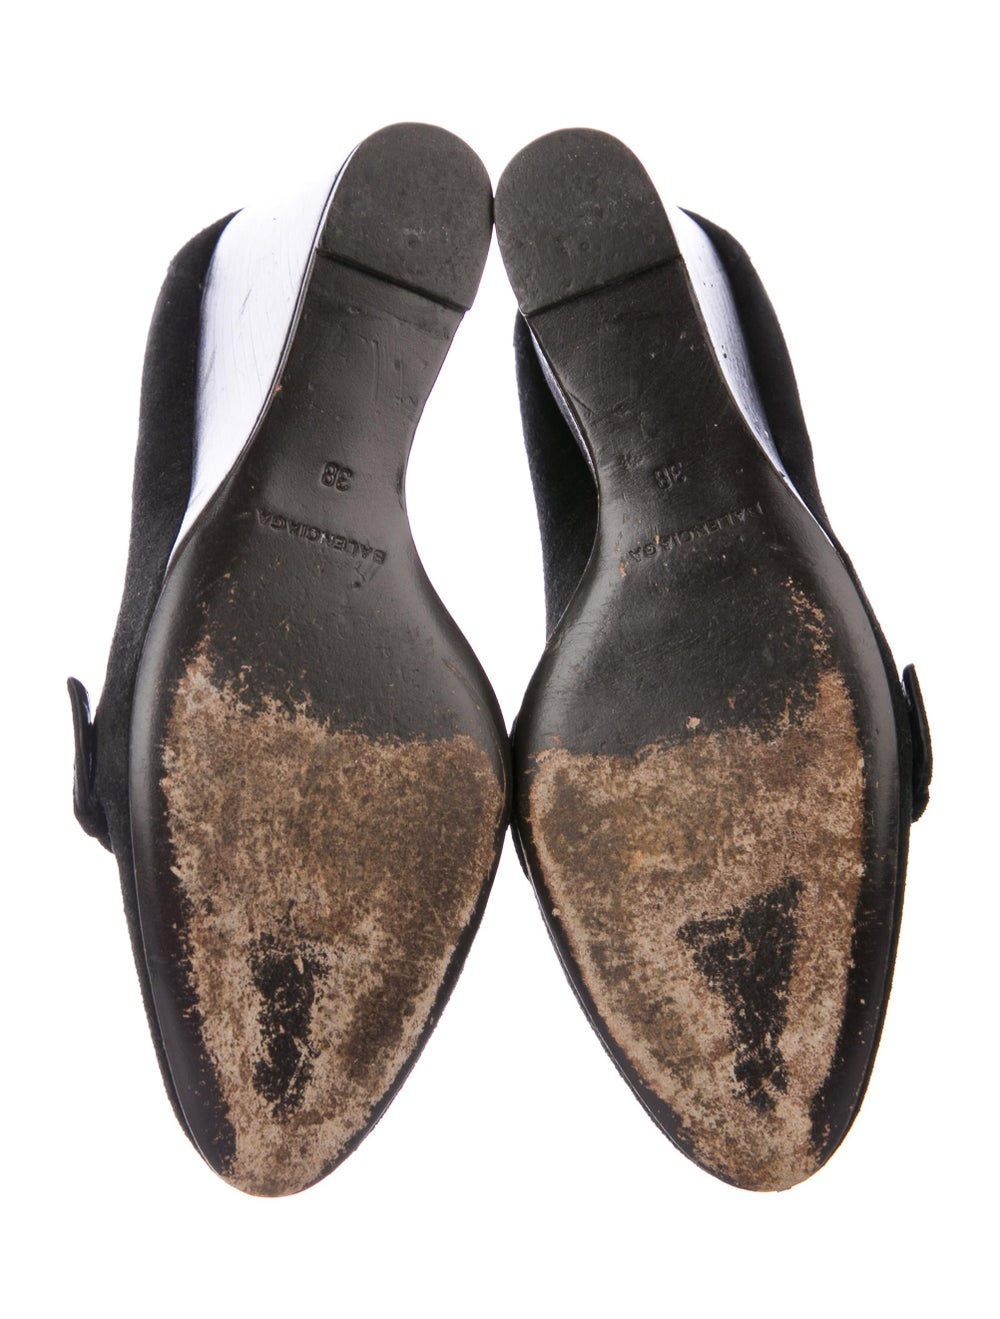 Balenciaga Suede Buckle Wedges Black - image 5